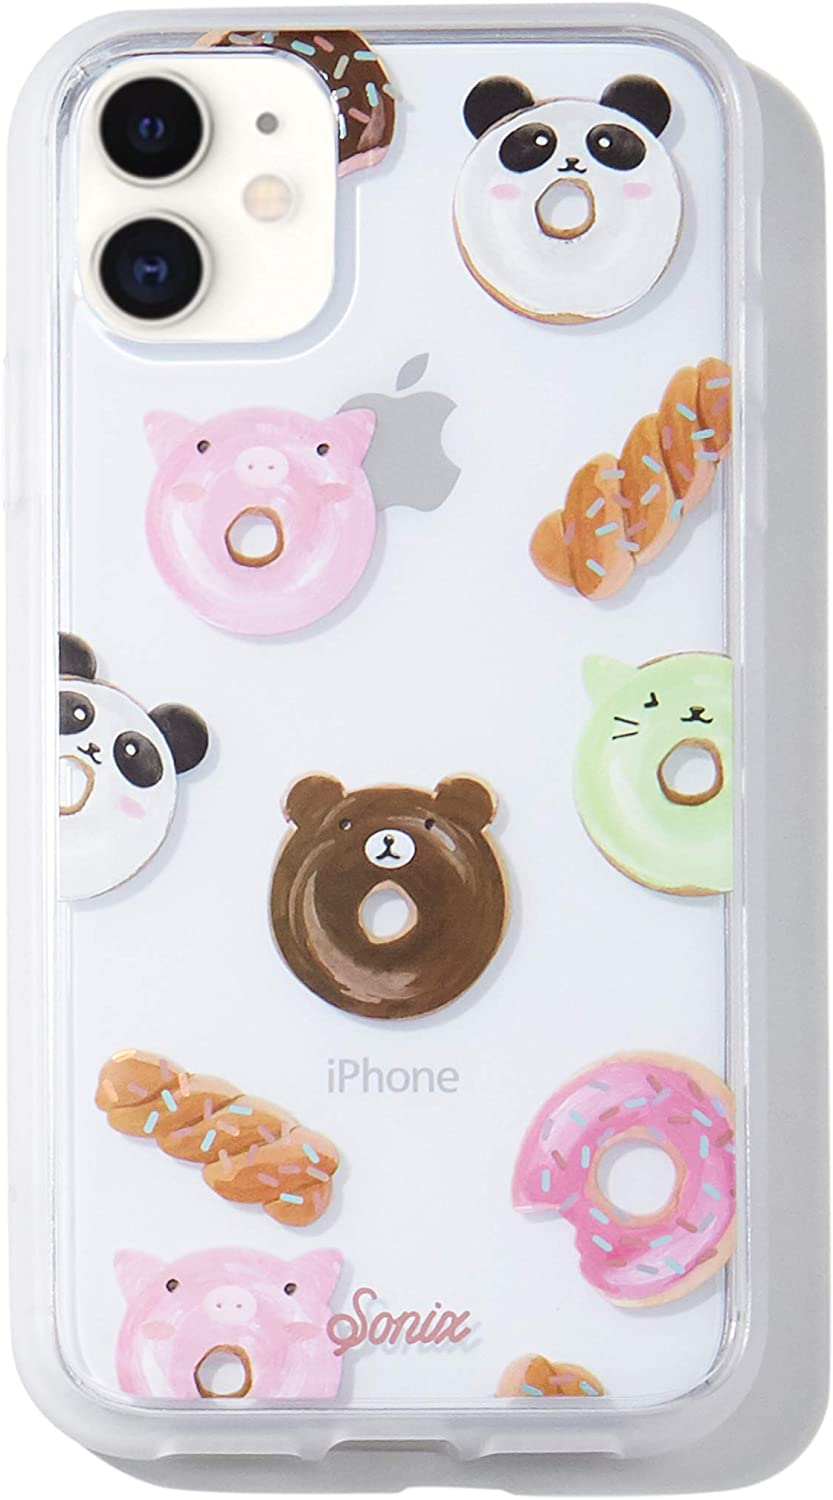 Sonix Kawaii Donuts Case for iPhone 11 [Military Drop Test Certified] Protective Clear Series for Apple iPhone 11